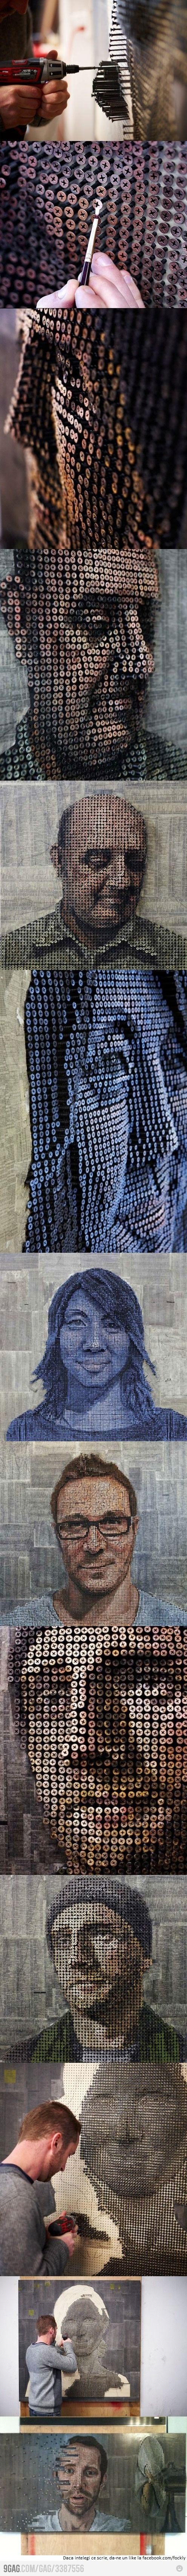 amazing art done with phillips head screws